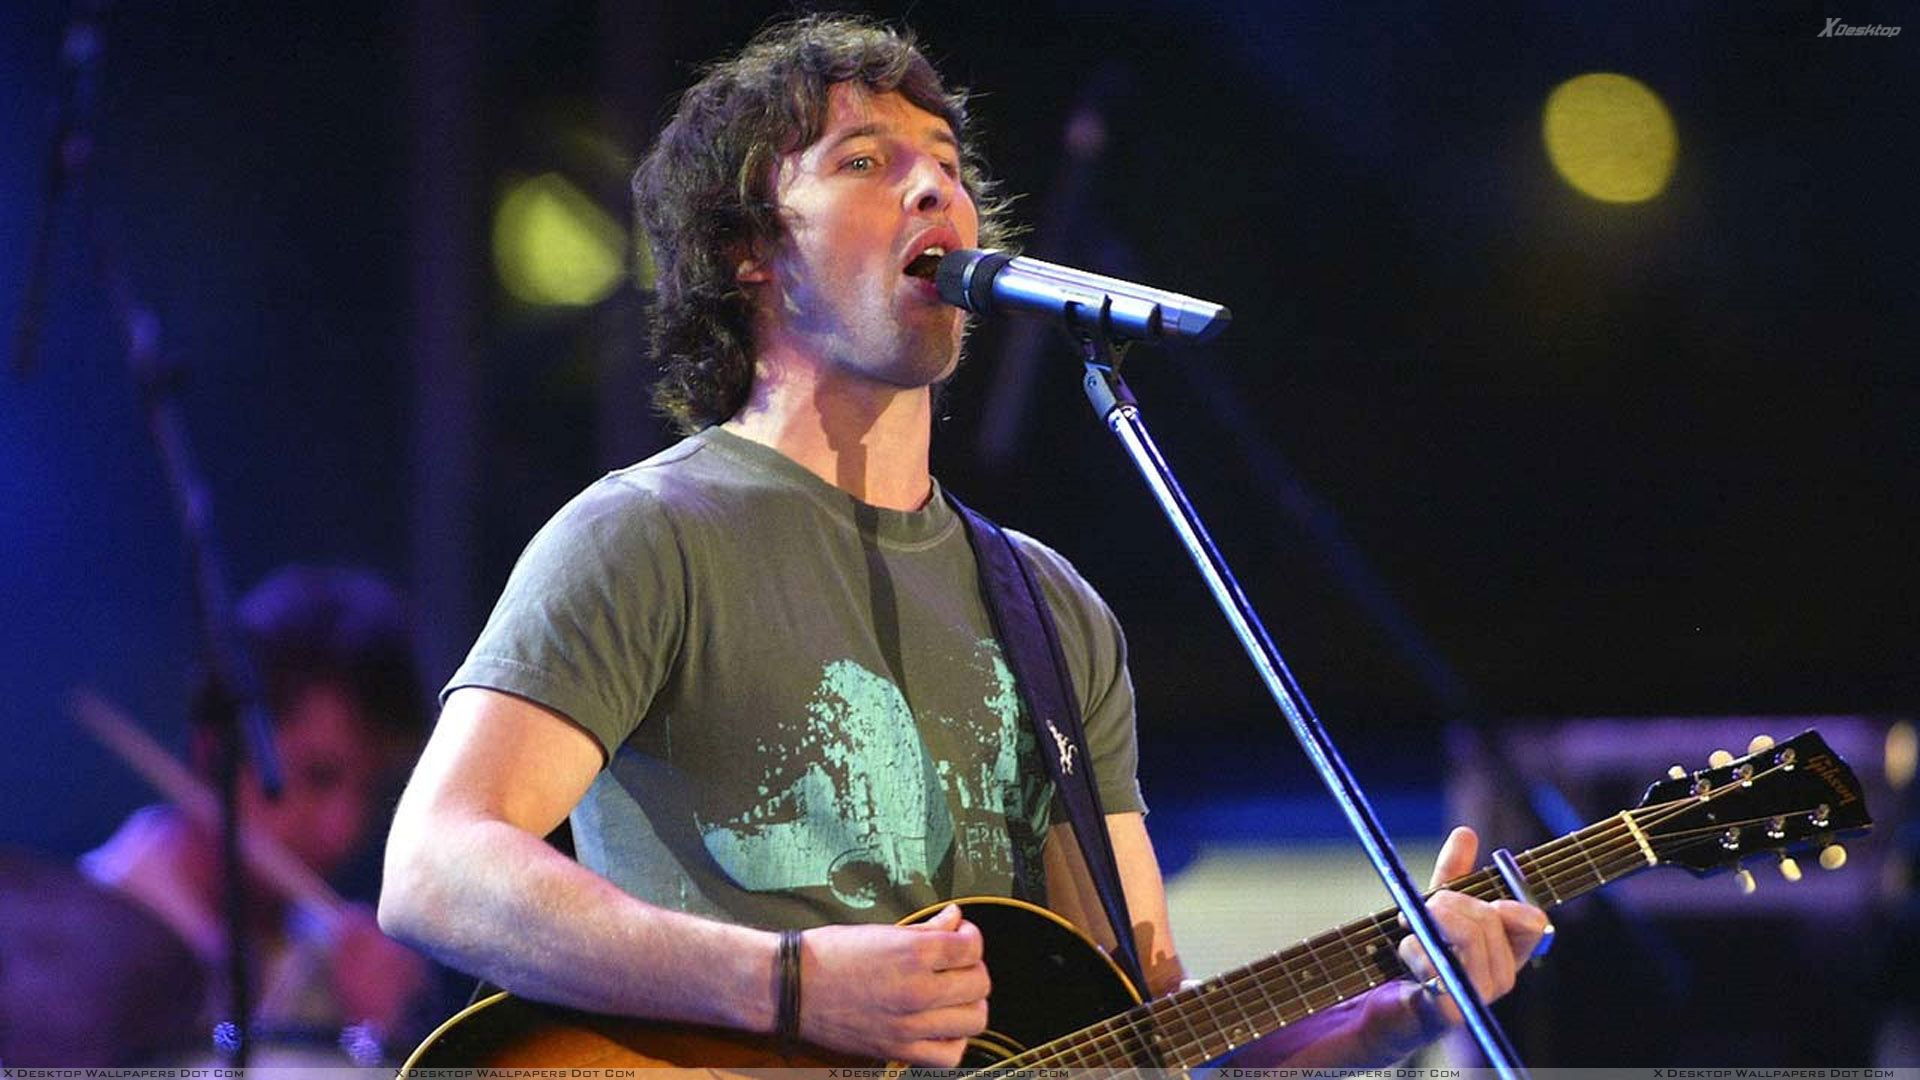 James Blunt James%20Blunt%20Guitar%20In%20Hand%20N%20Singing%20On%20Stage